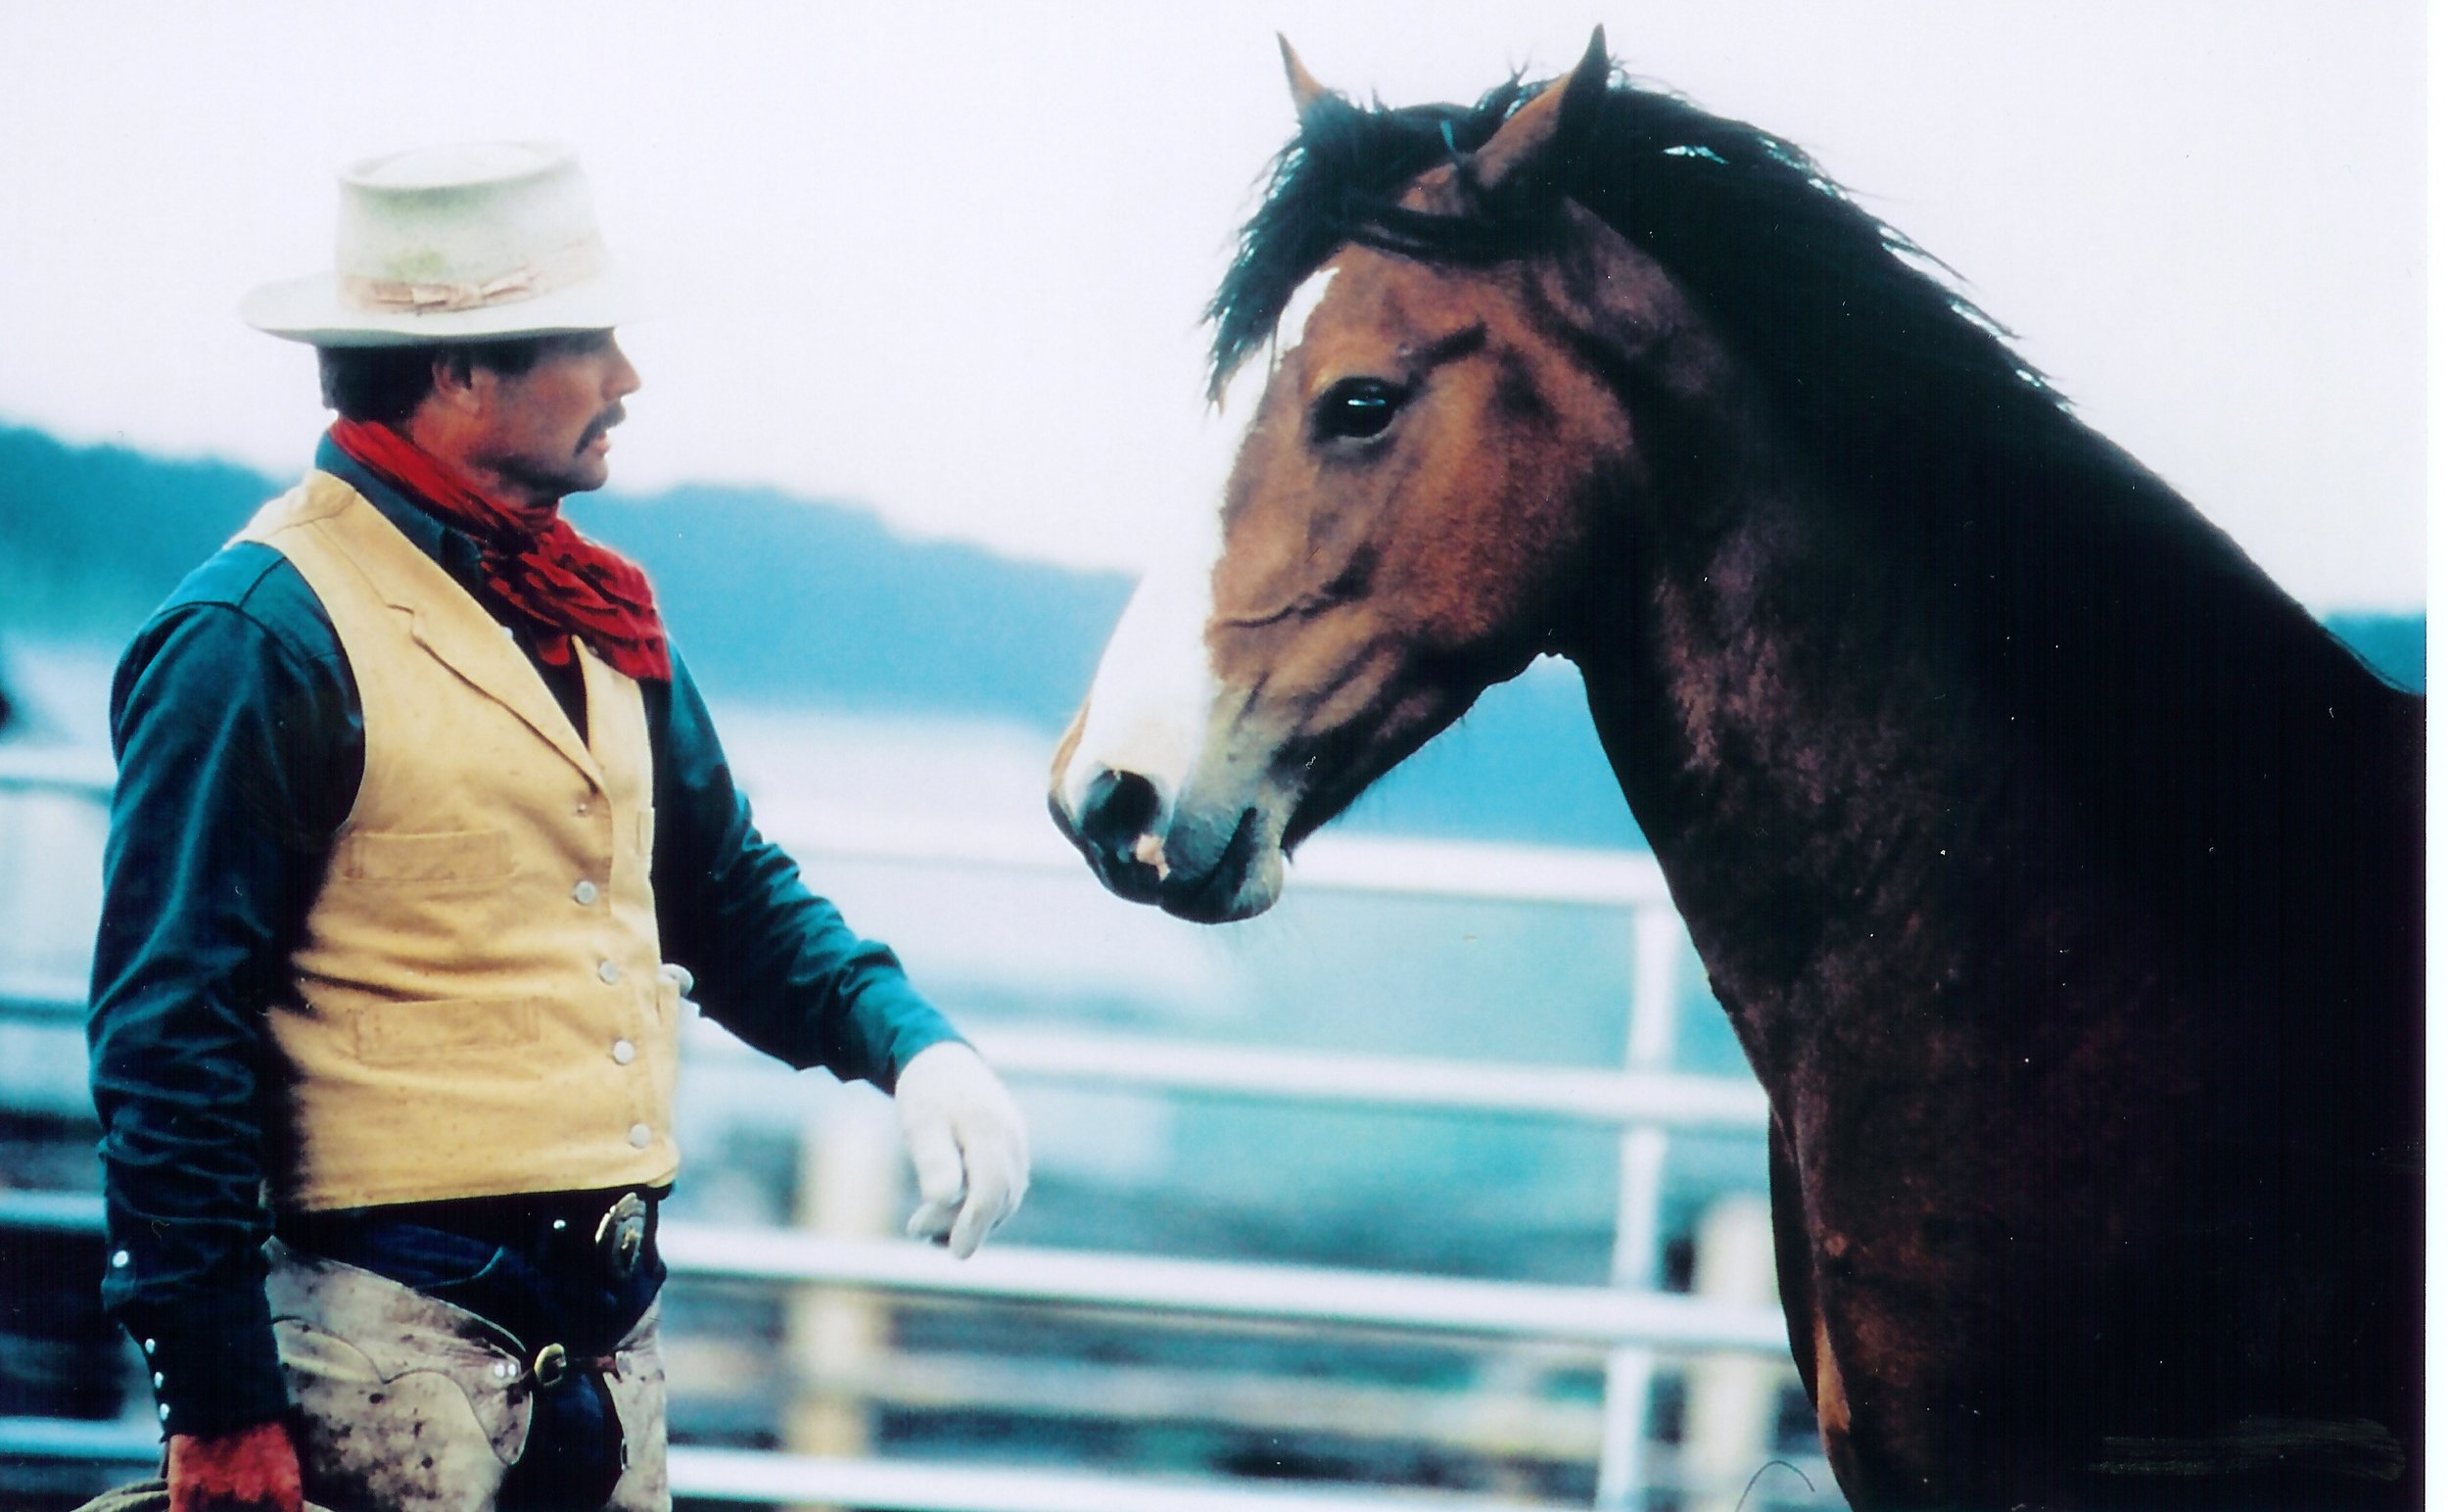 HORSE WHISPERING WILL CHANGE YOUR LIFE -